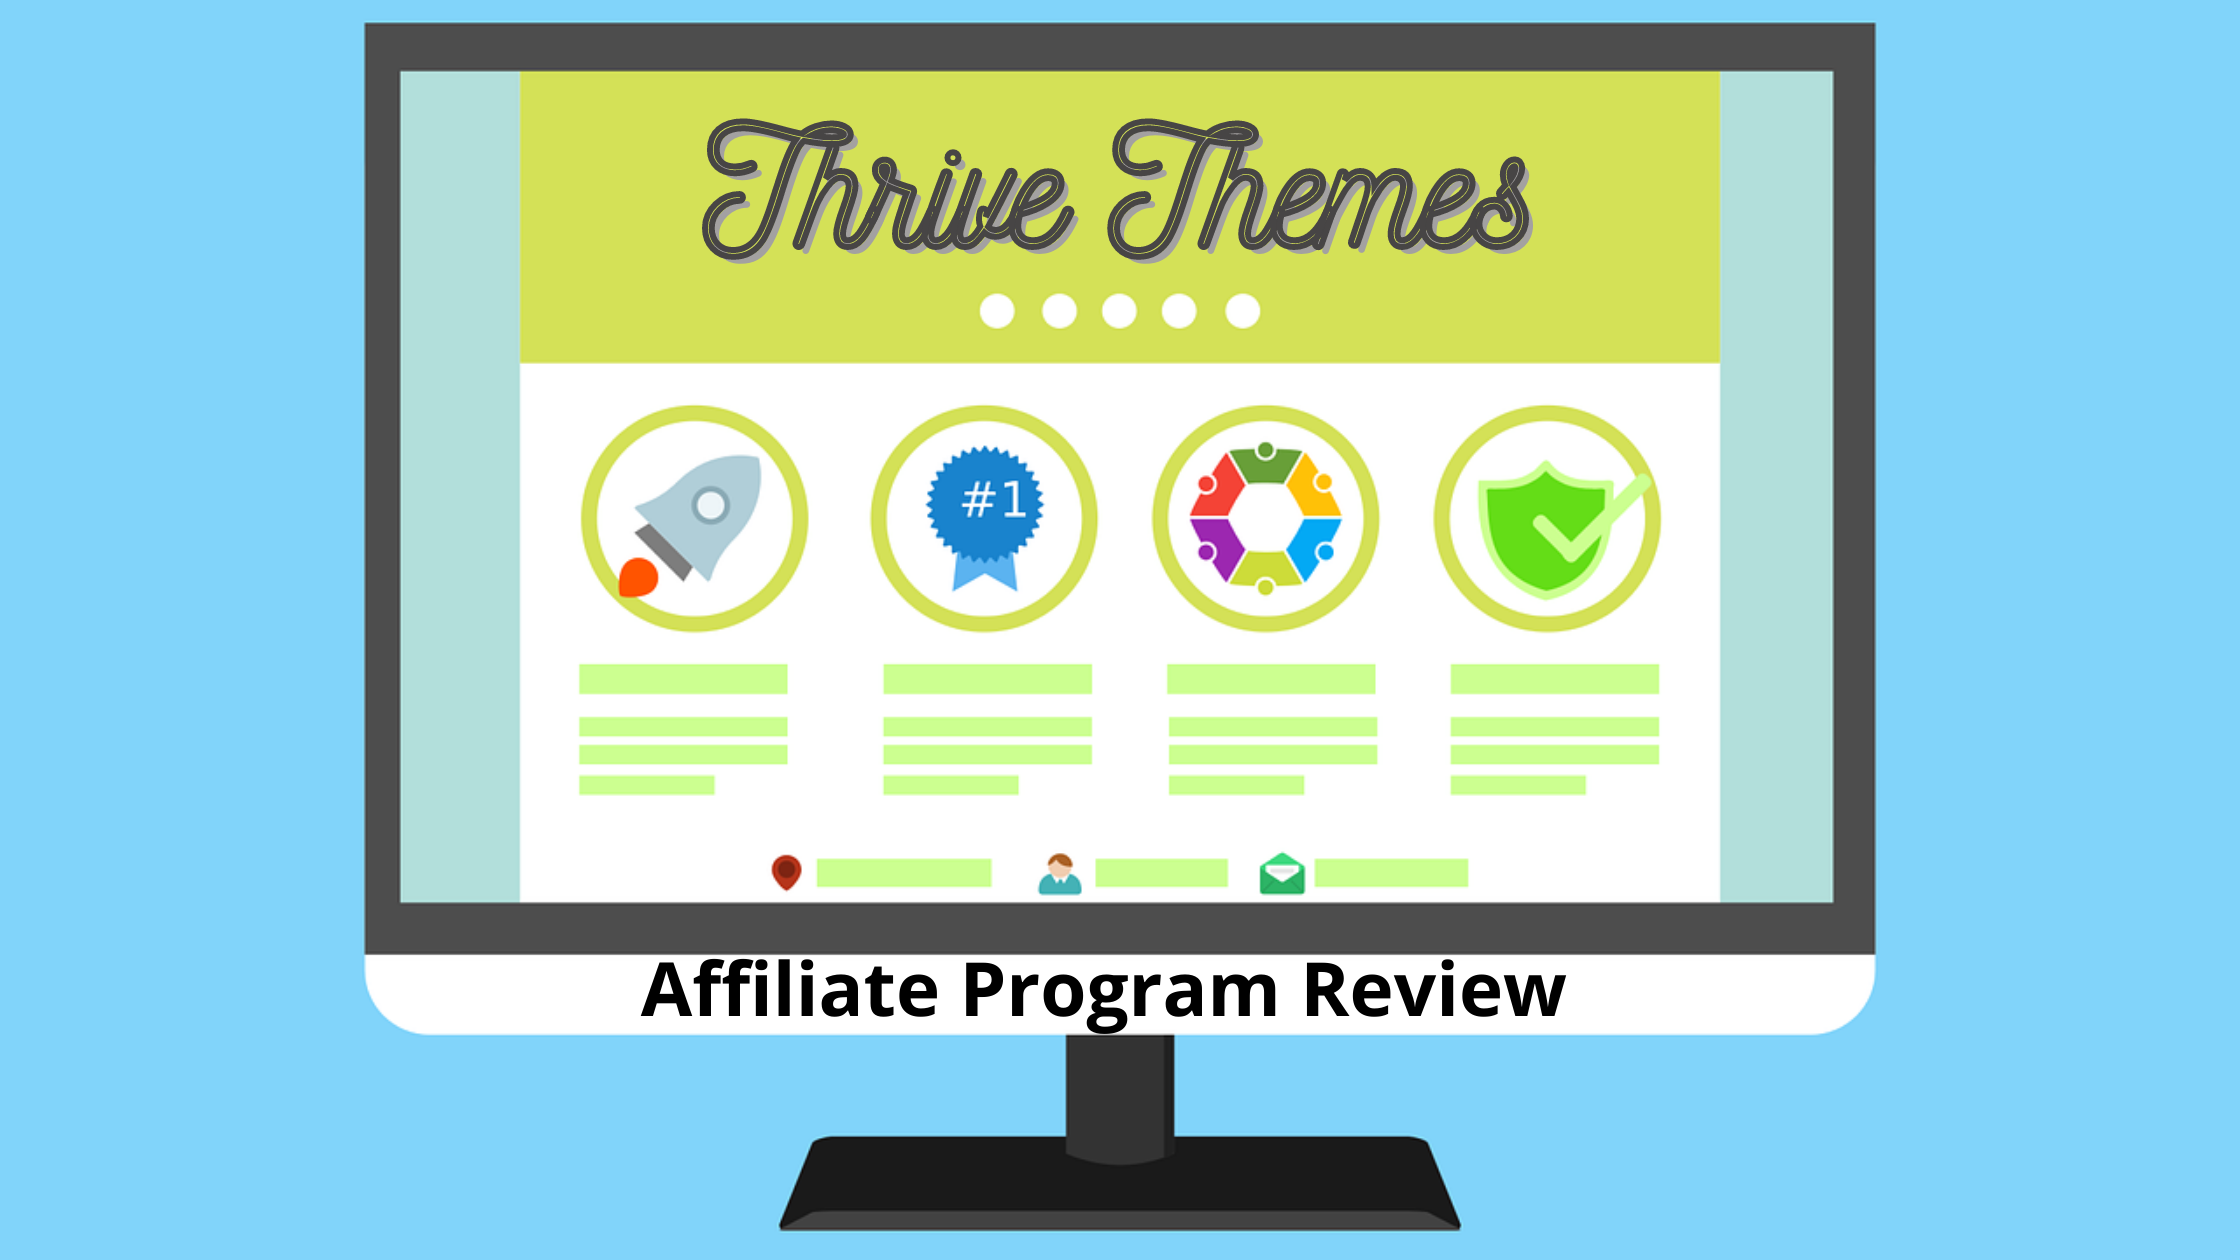 Thrive_Themes_Affiliate_Program